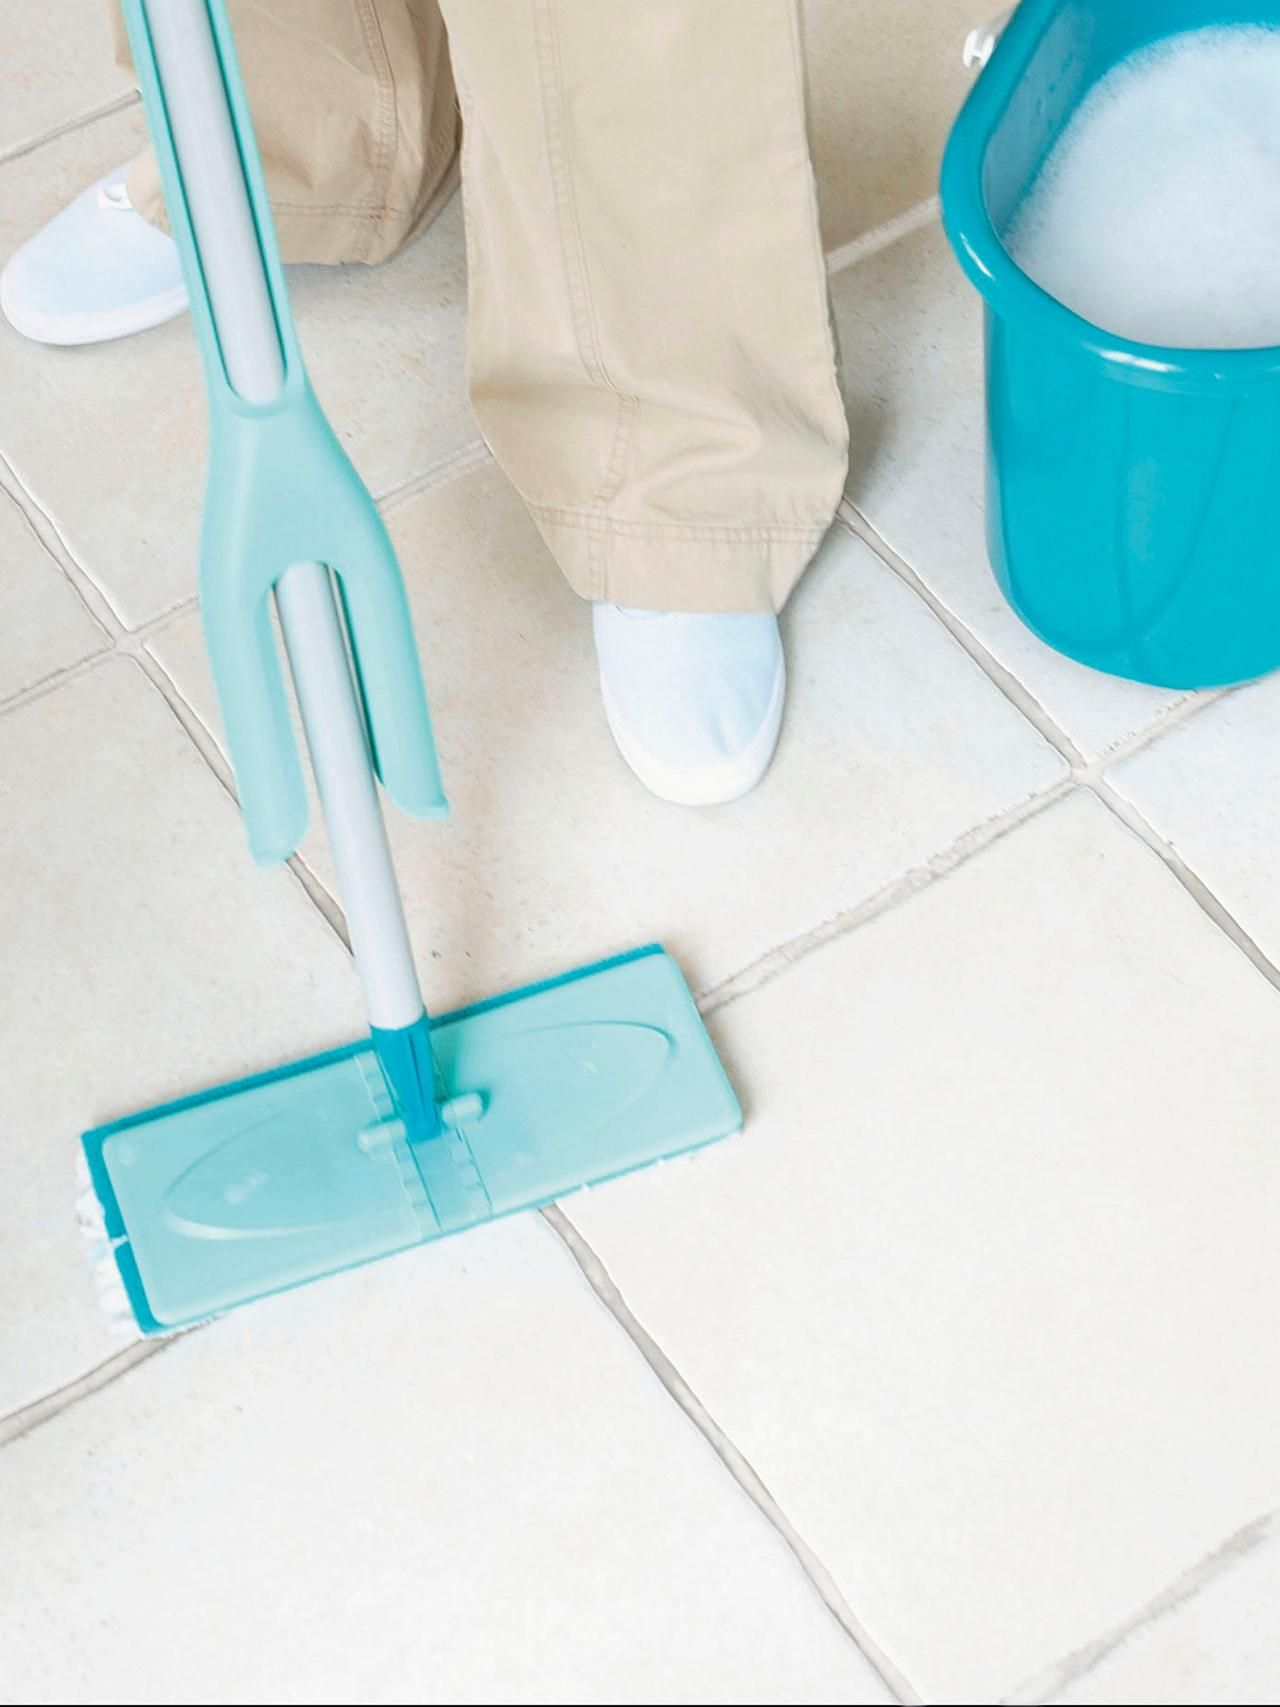 Cleaning ceramic tile floors beautiful pastel blue mopping tools cleaning ceramic tile floors beautiful pastel blue mopping tools mopping water bucket doublecrazyfo Image collections